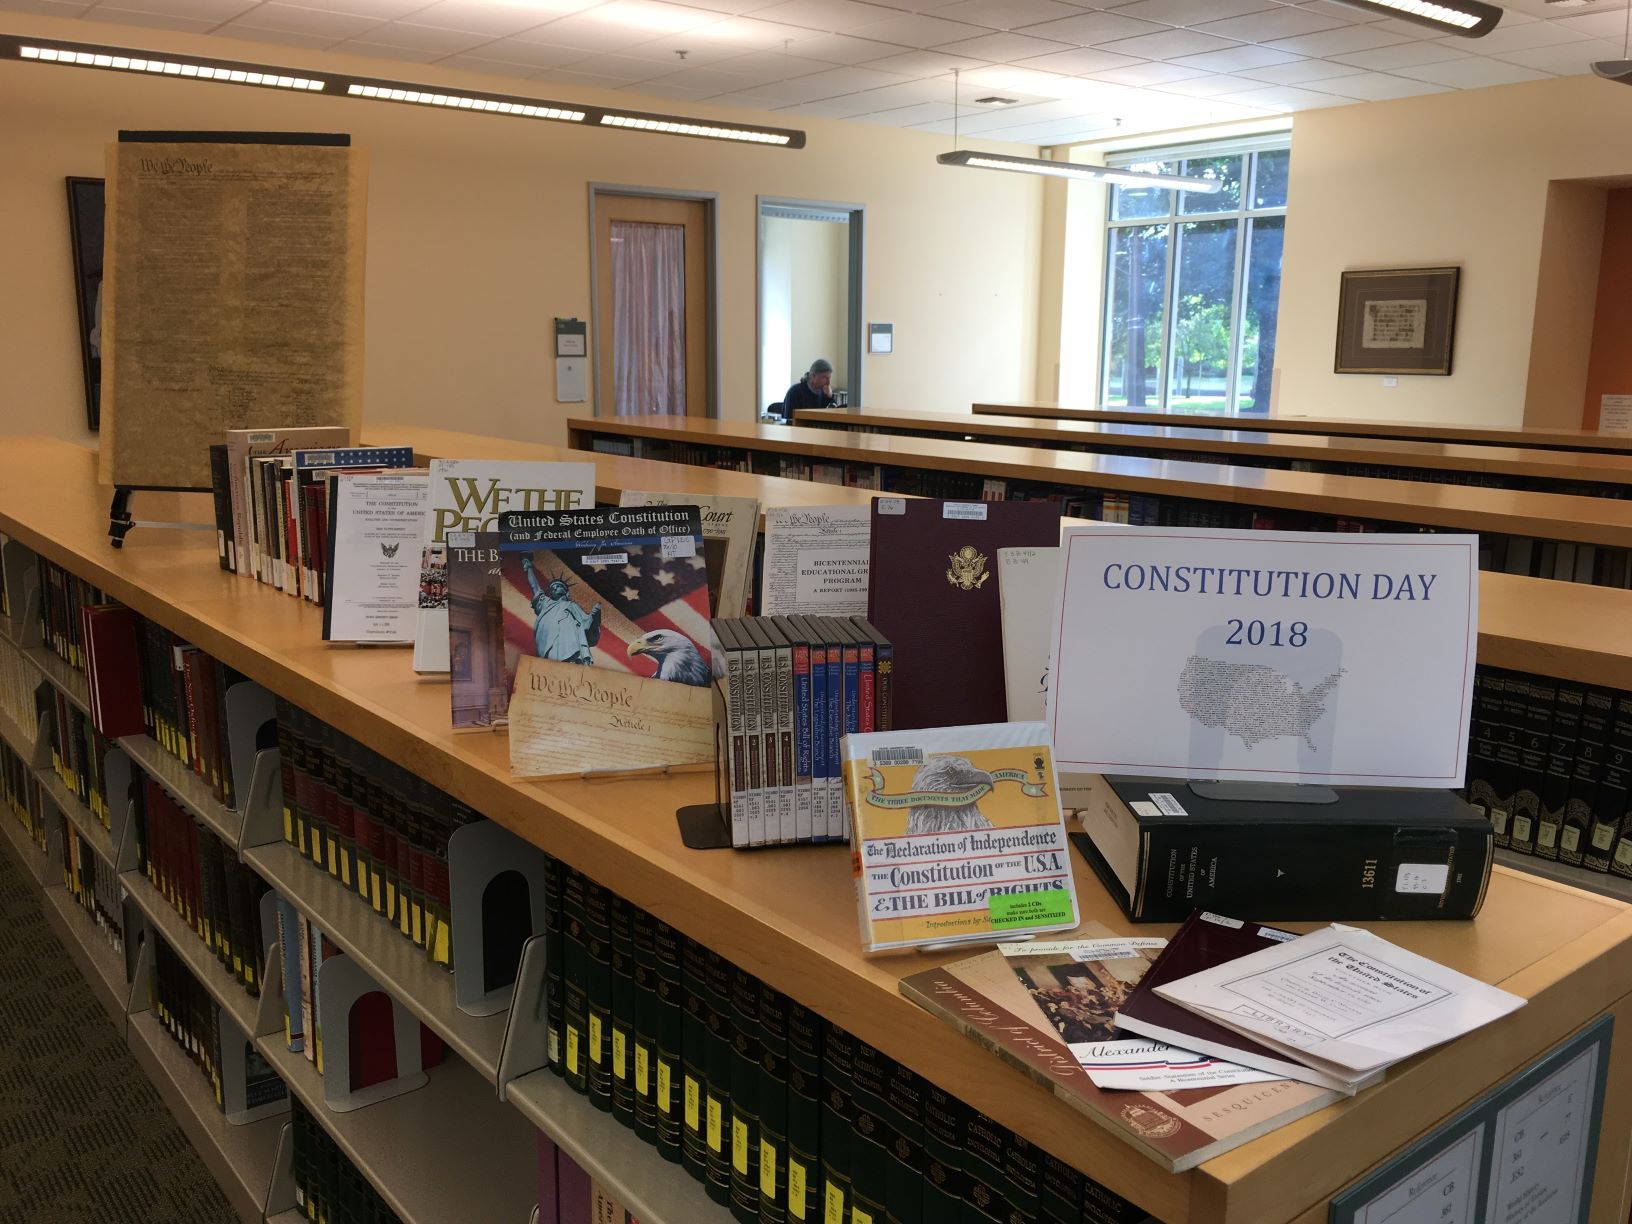 Constitution Day 2018 Display